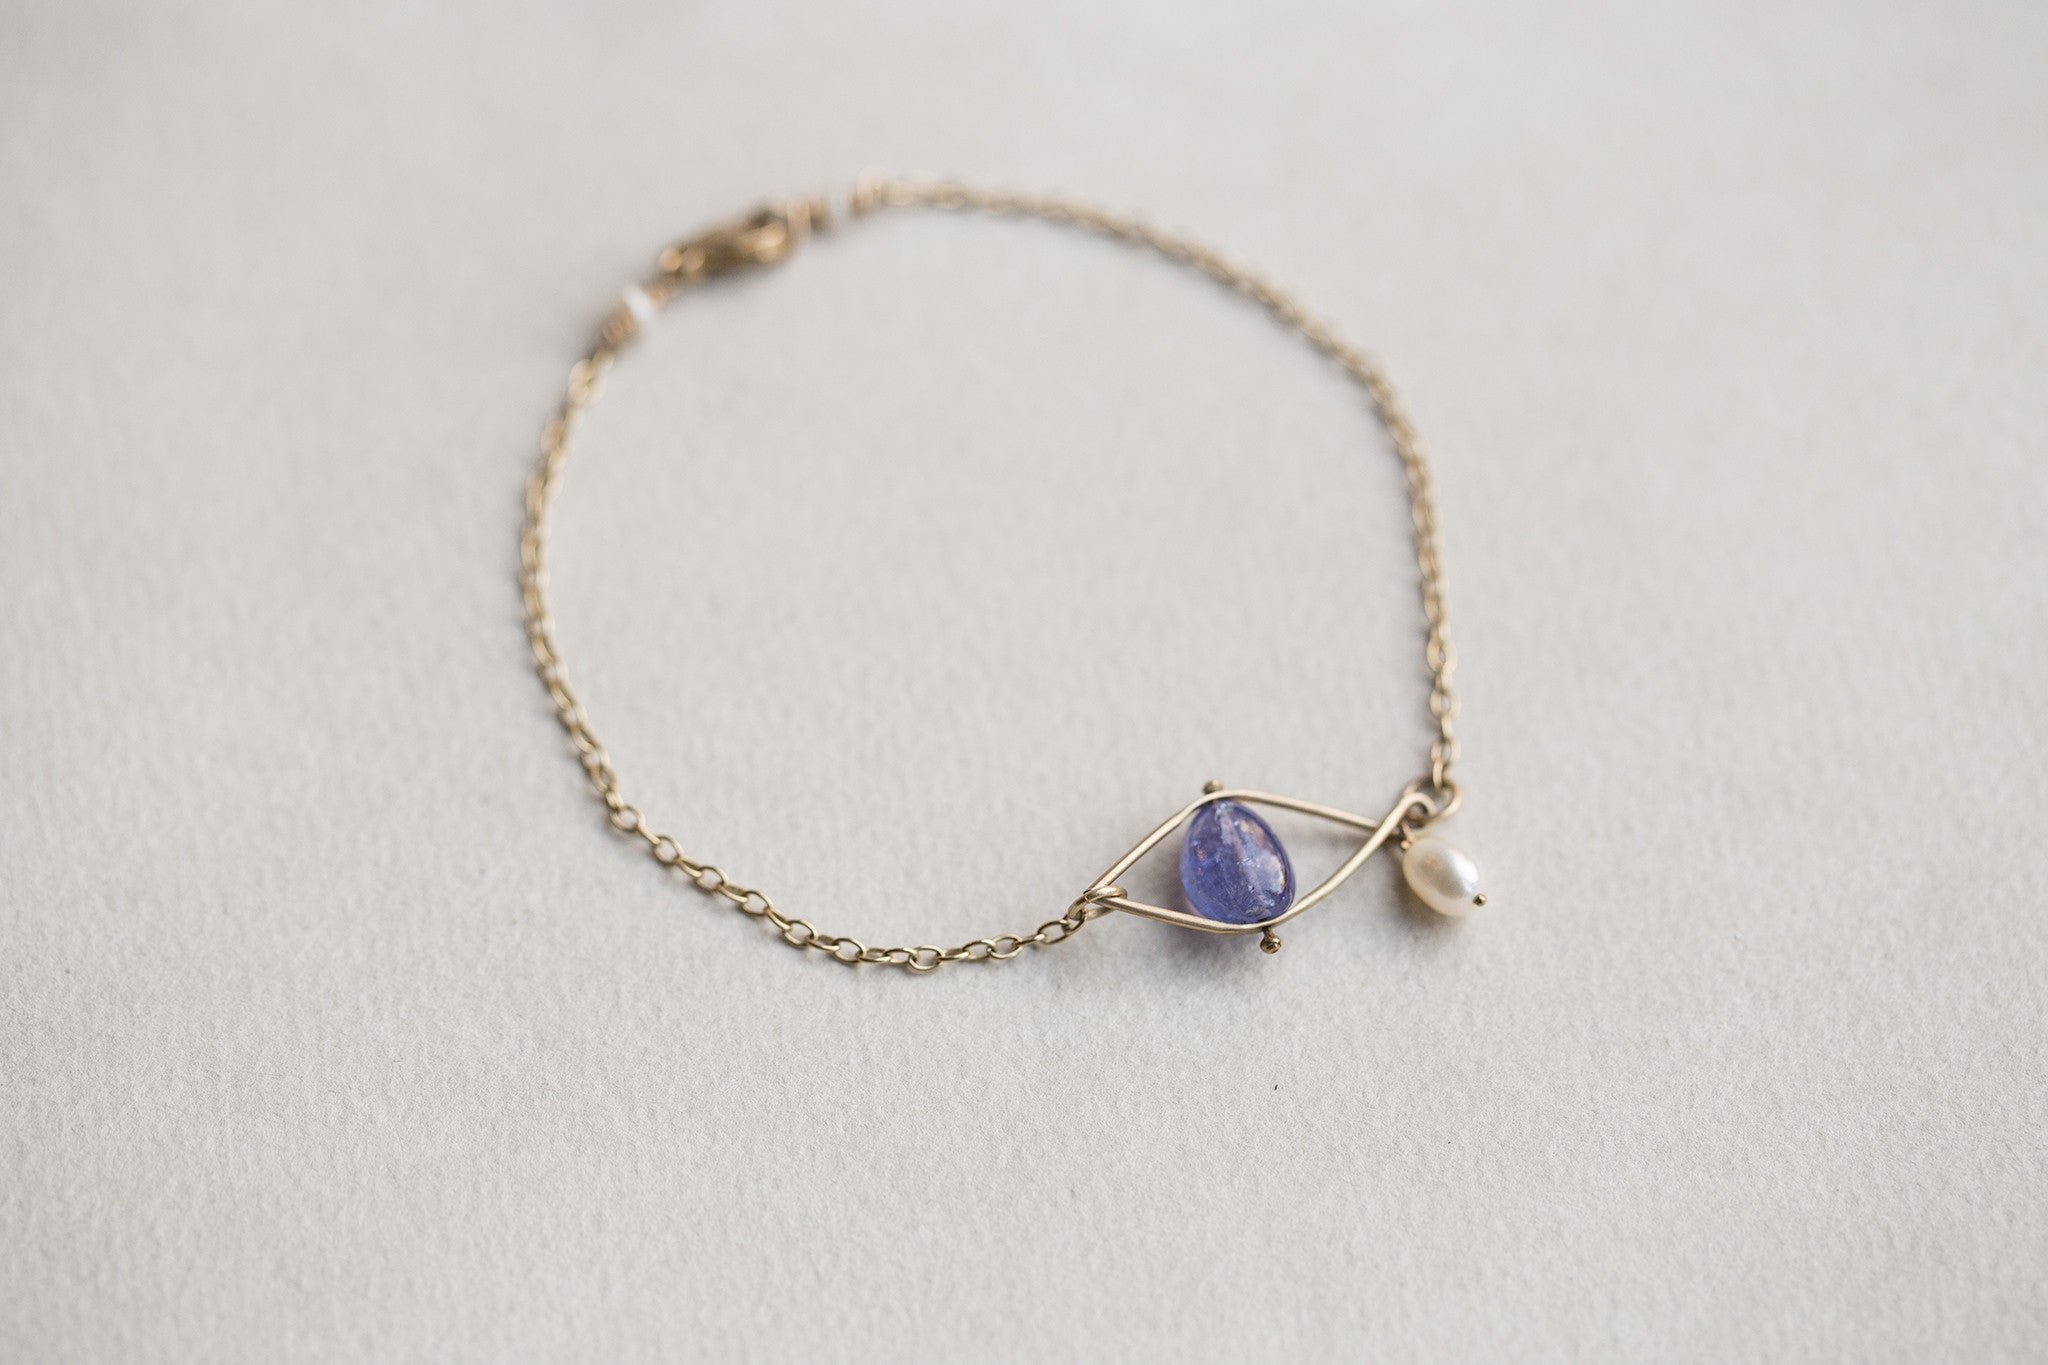 incredibly original eye and tear bracelet, made of 9 carat gold, tanzanite and freshwater pearl